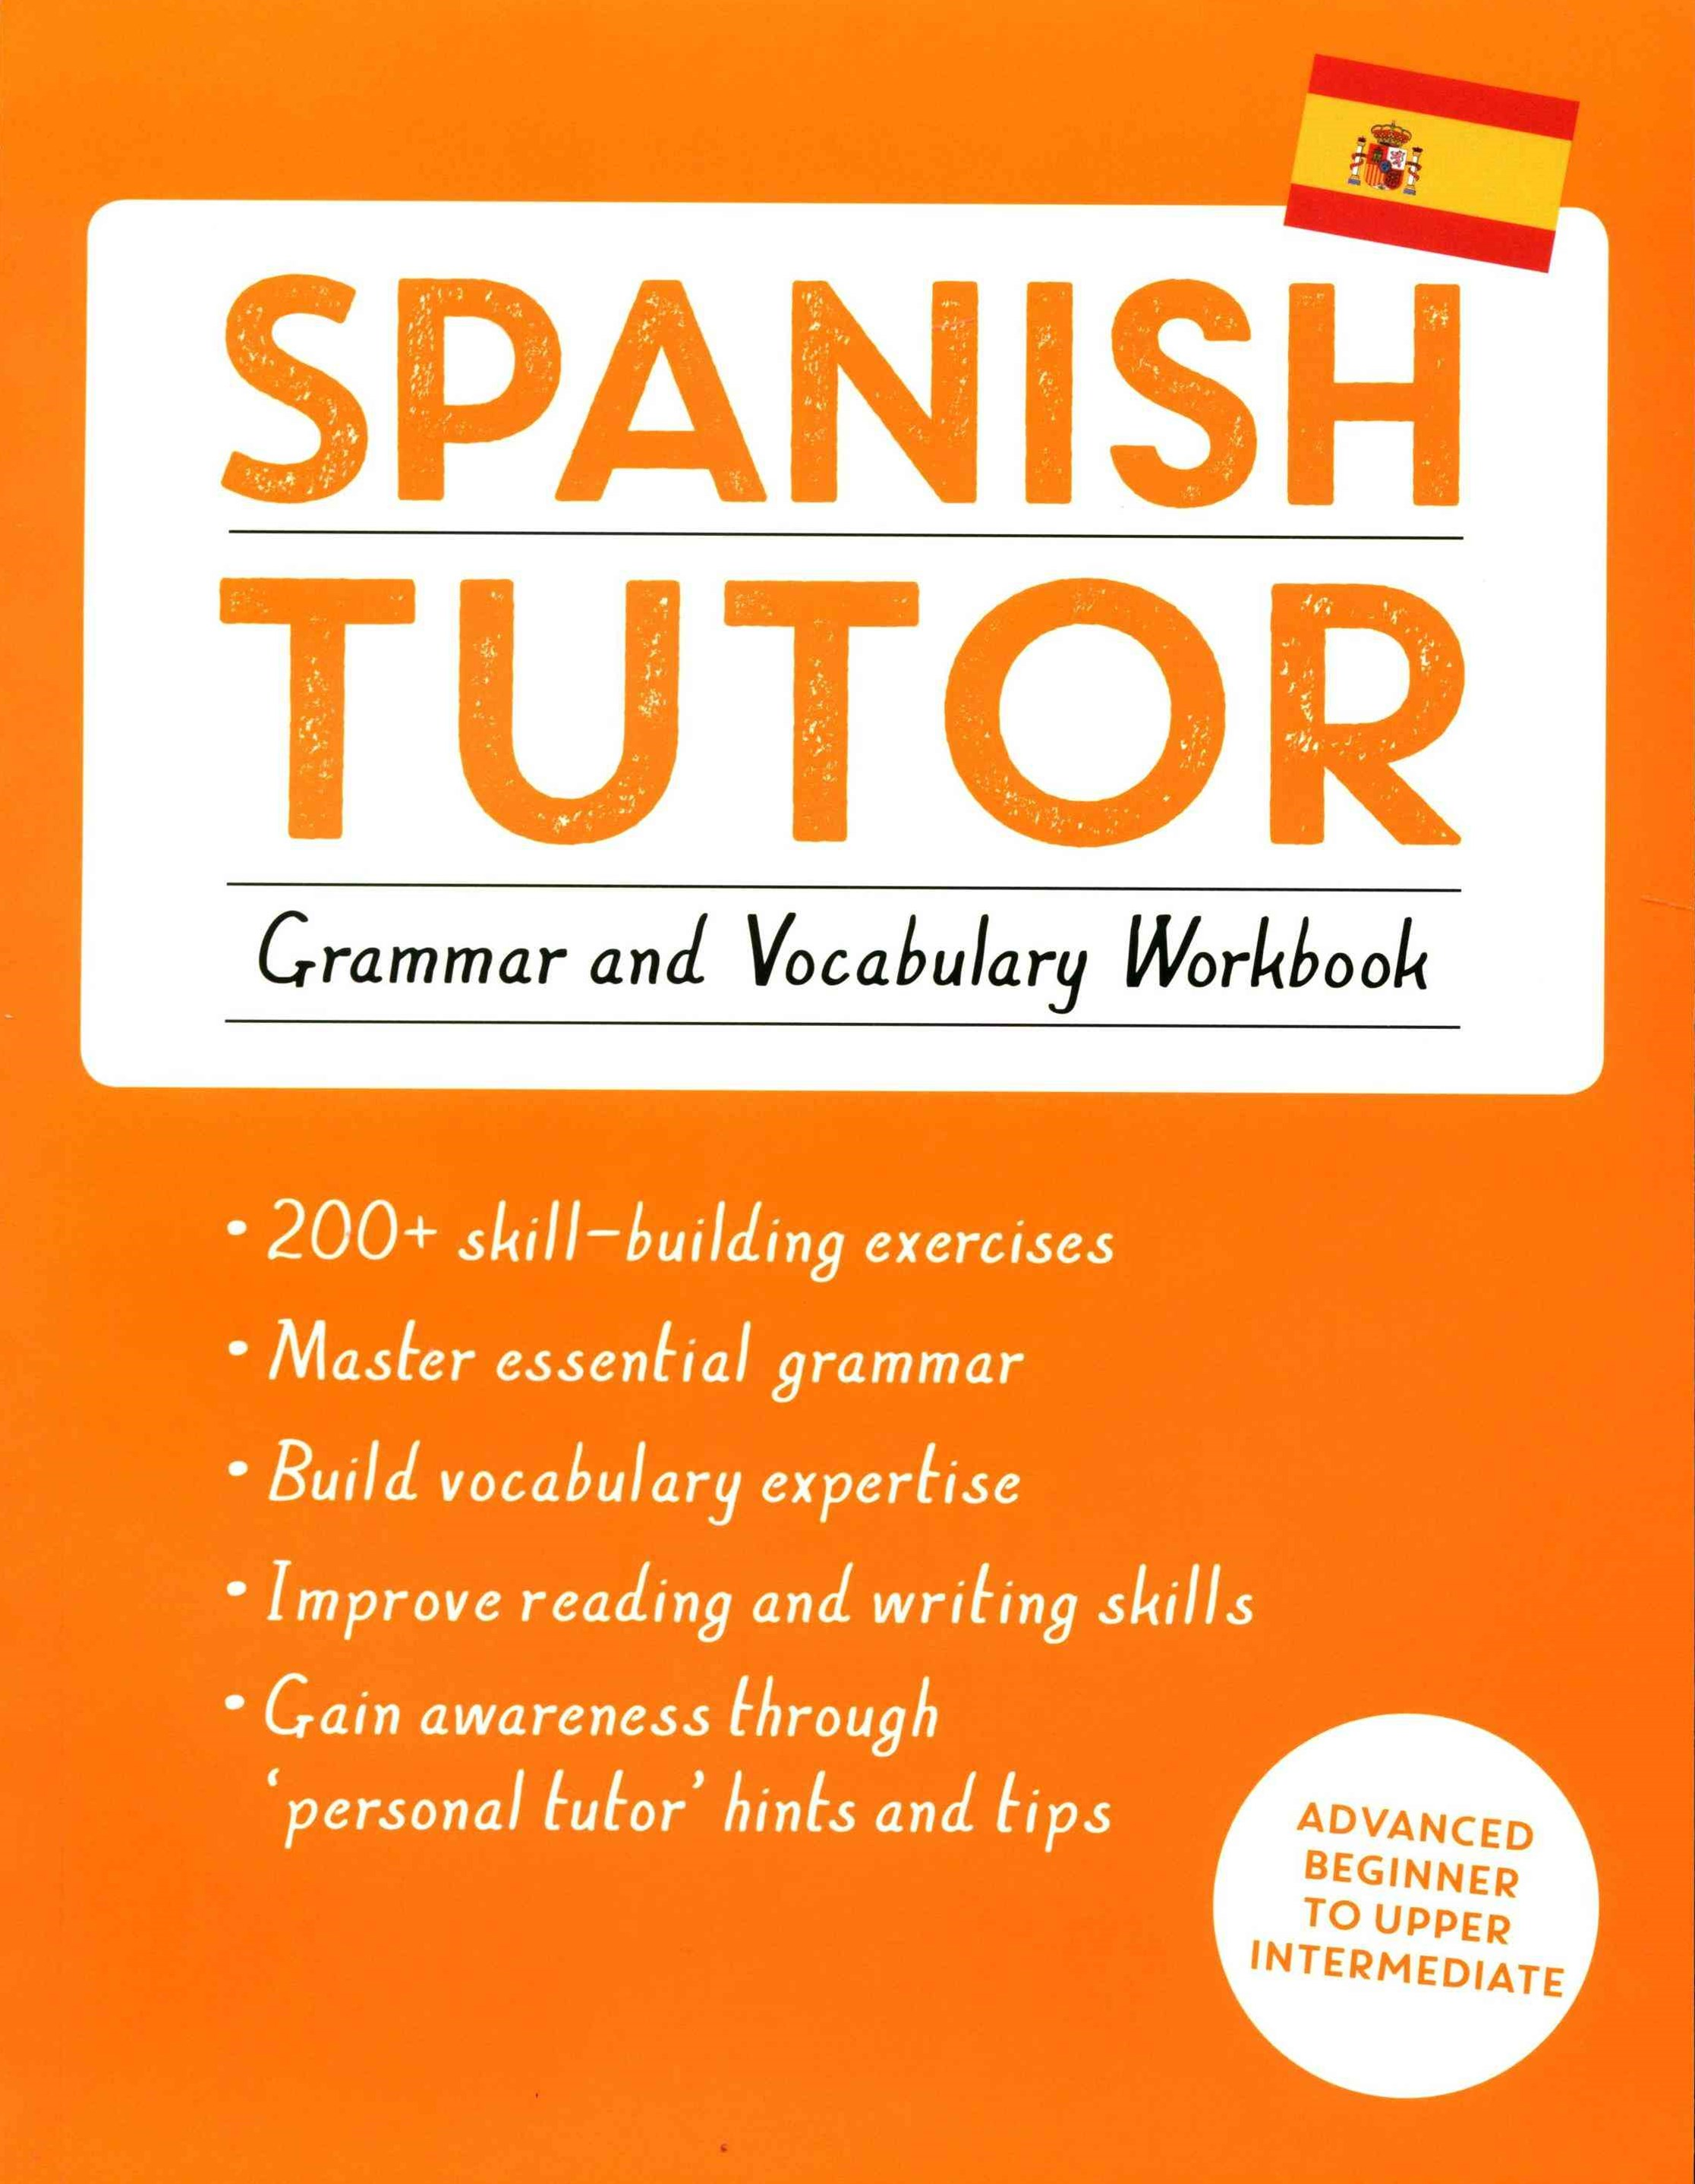 Spanish Tutor: Grammar and Vocabulary Workbook (Learn Spanish with Teach Yourself)